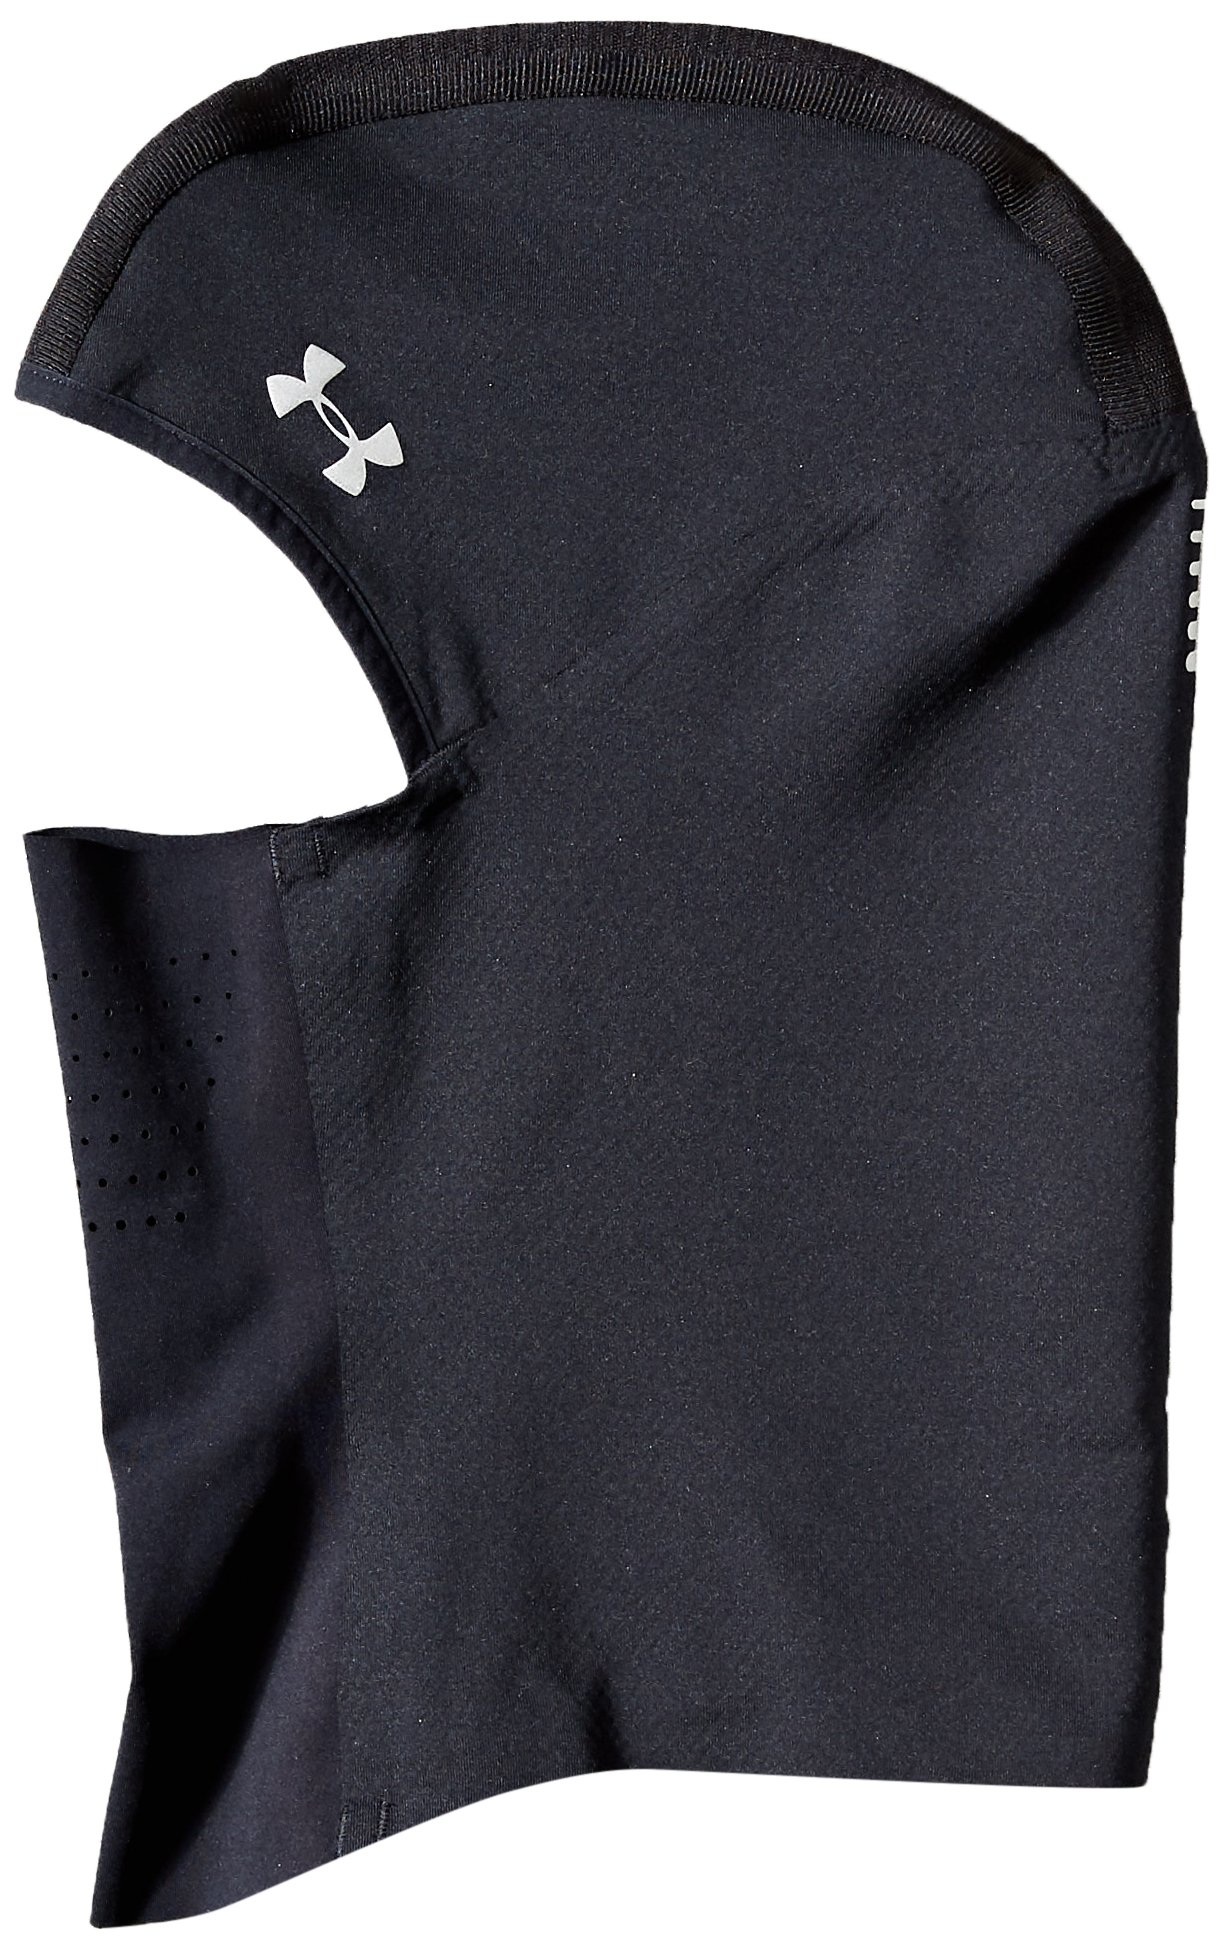 Under Armour Women's Reactor Run Balaclava, Black (001)/Silver, One Size